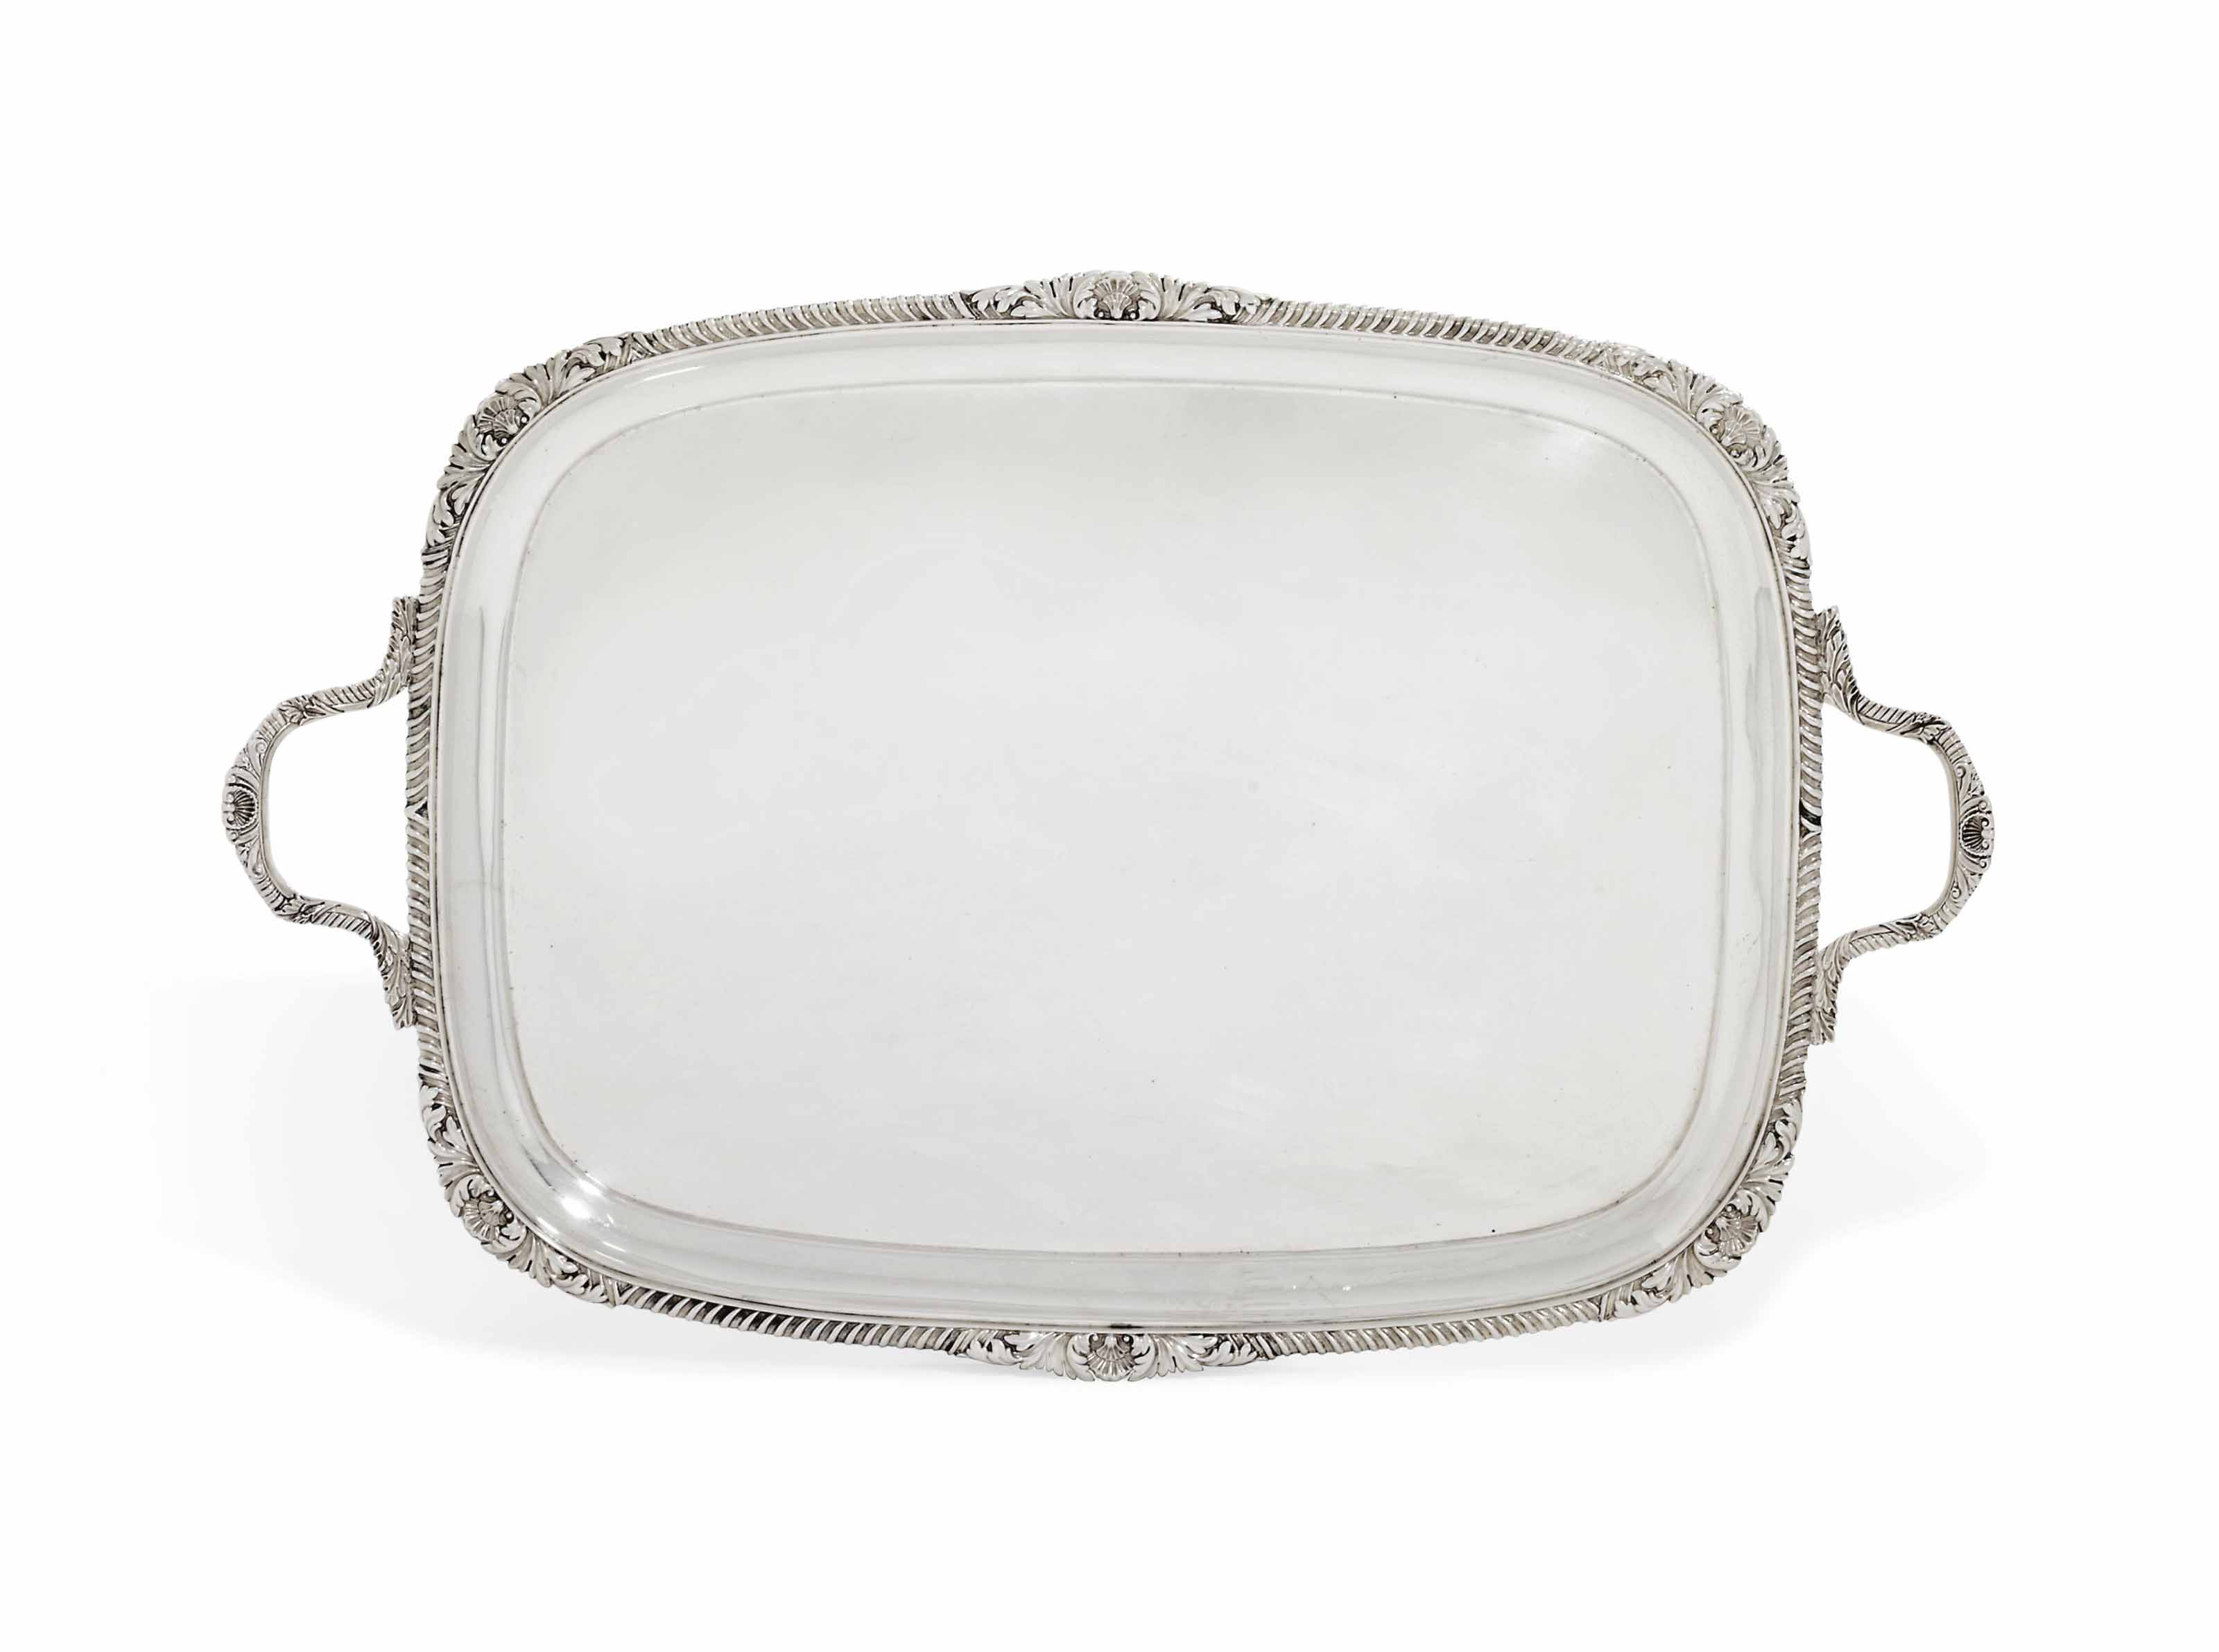 A VICTORIAN SILVER TRAY